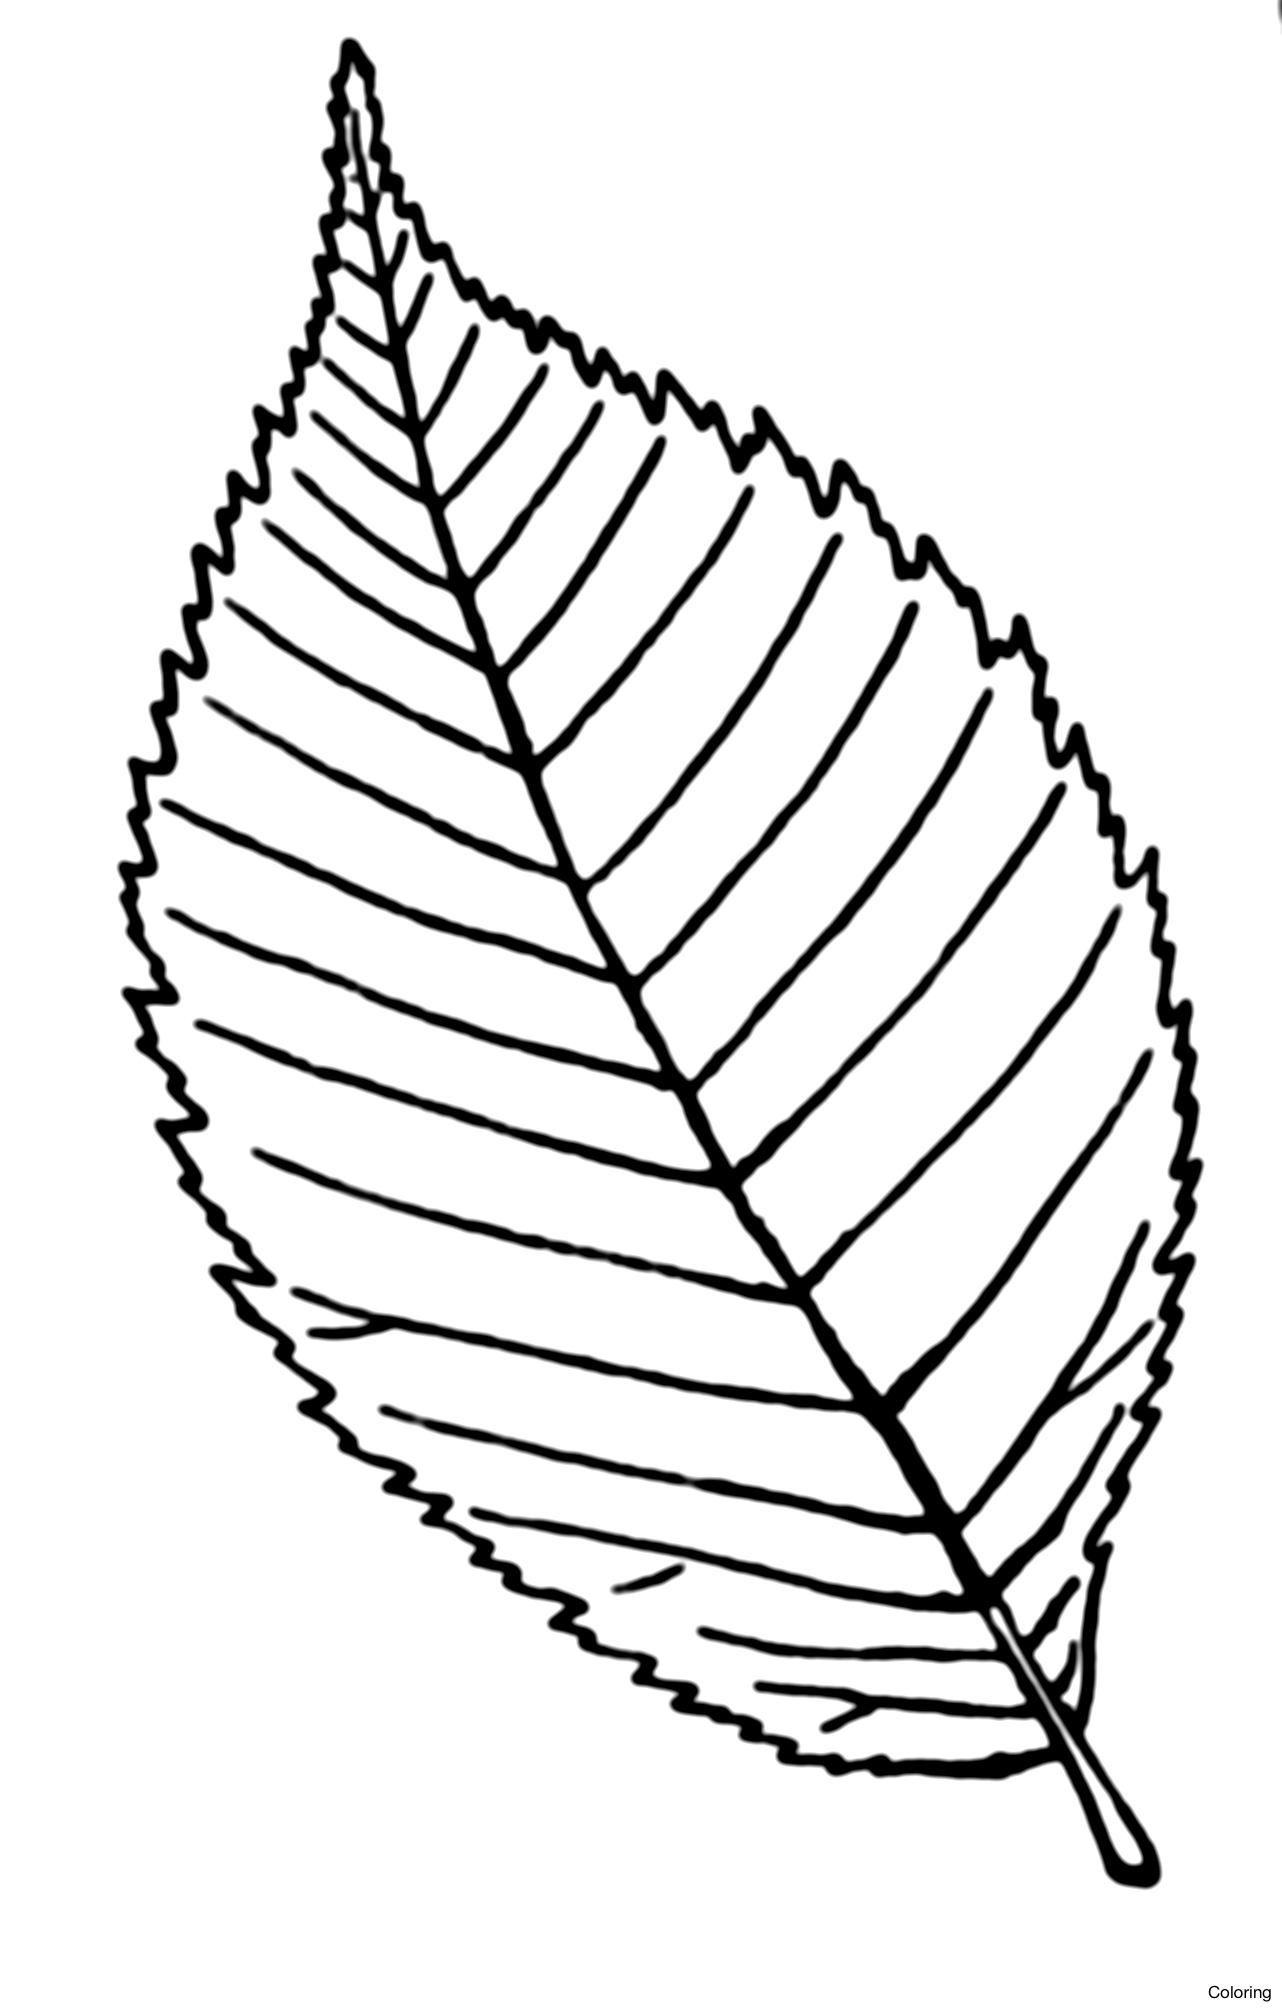 1282x2008 Hd Stock Vector Bamboo Leaves Drawing Of Coloring 21f Falling